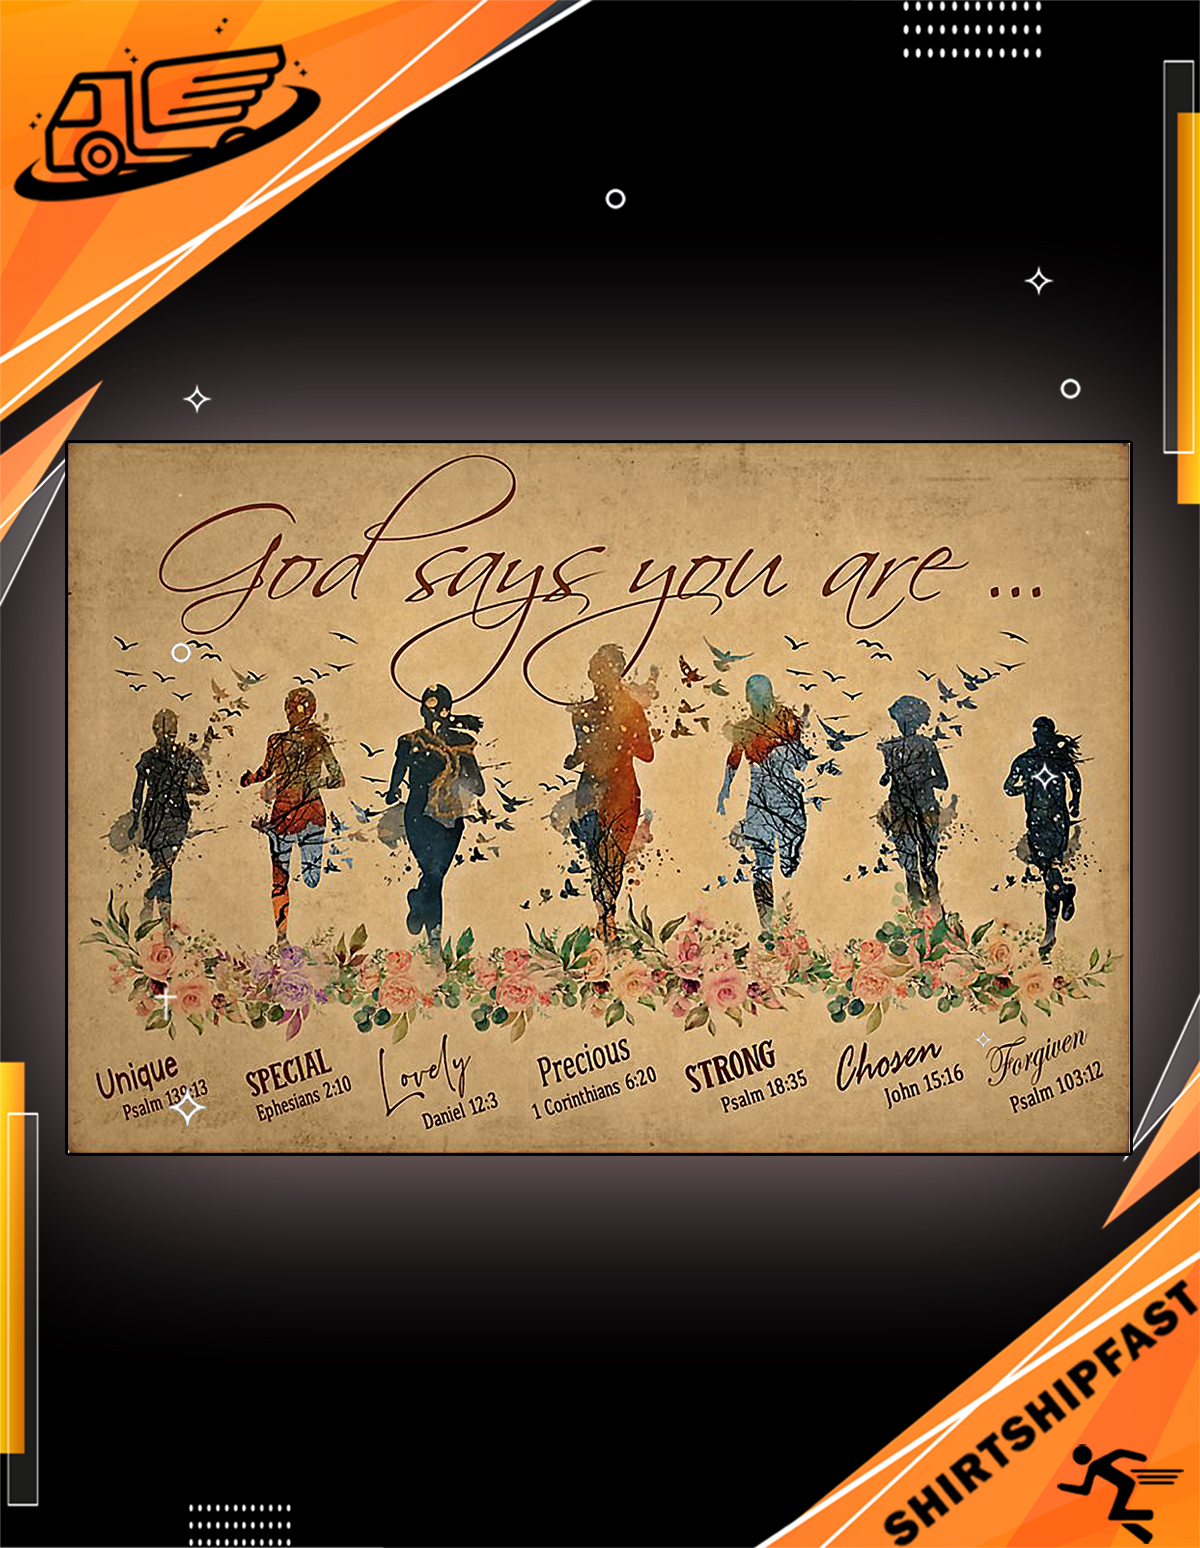 God says you are running woman poster - Picture 1